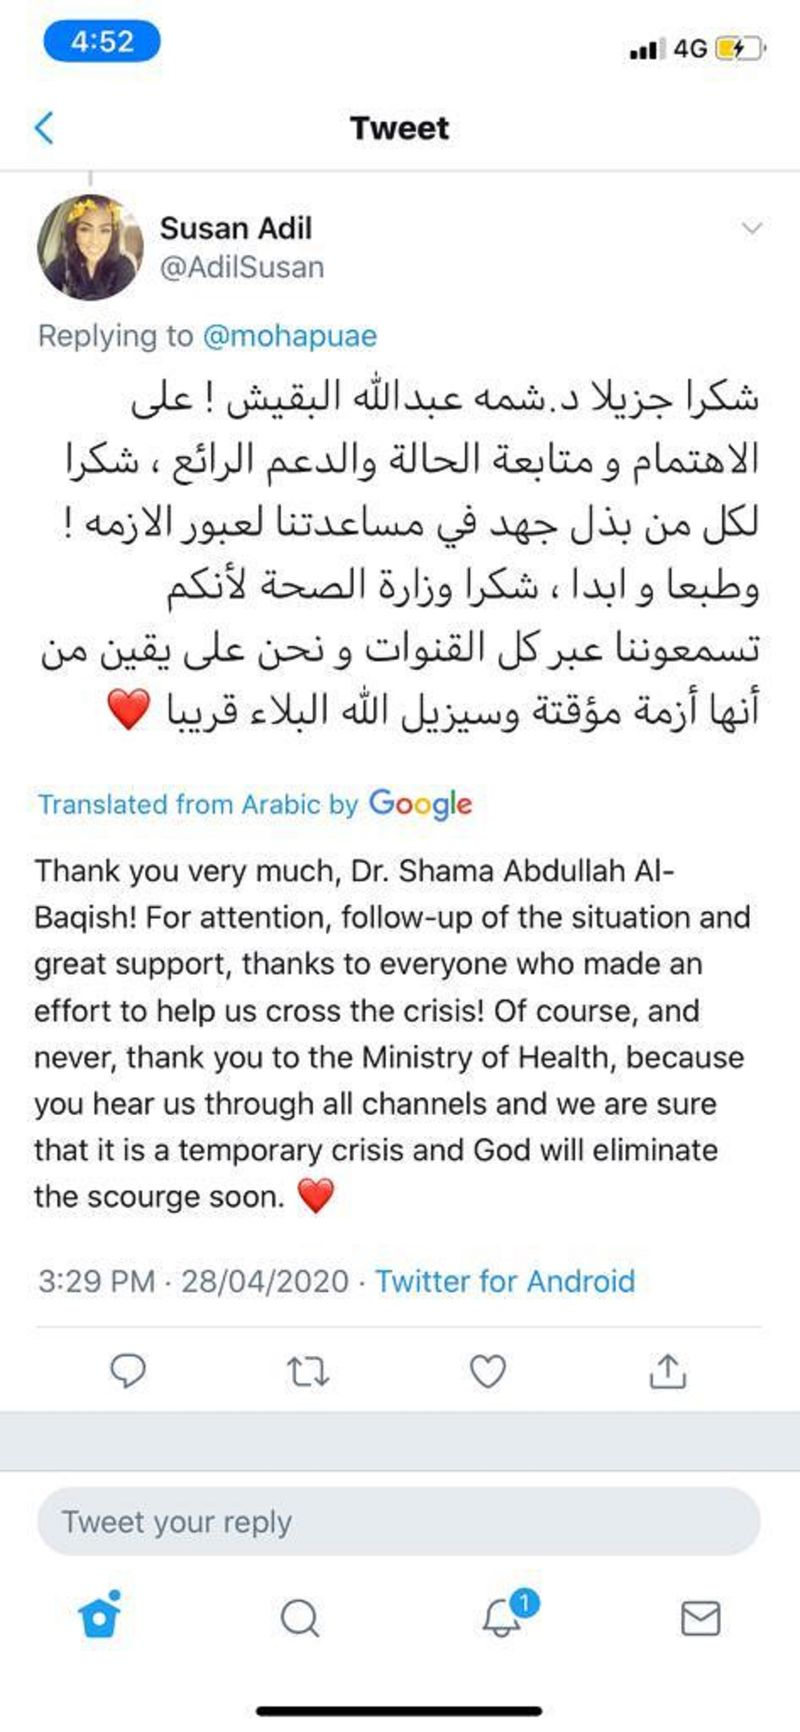 Tweets between the patient's daughter and the Ministry of Health